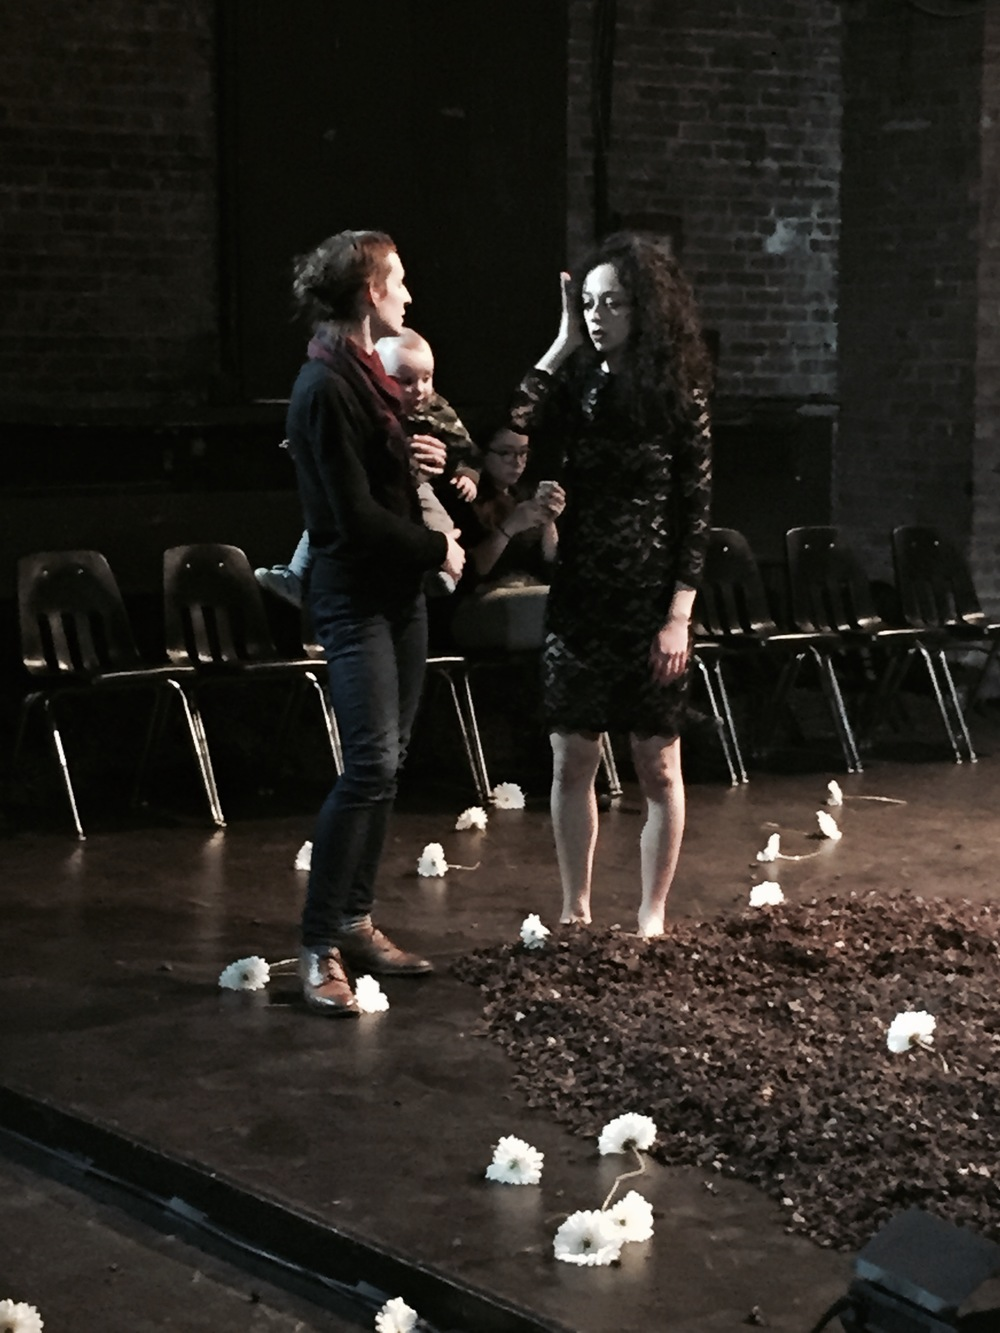 Coaching on set for Dido & Aeneas